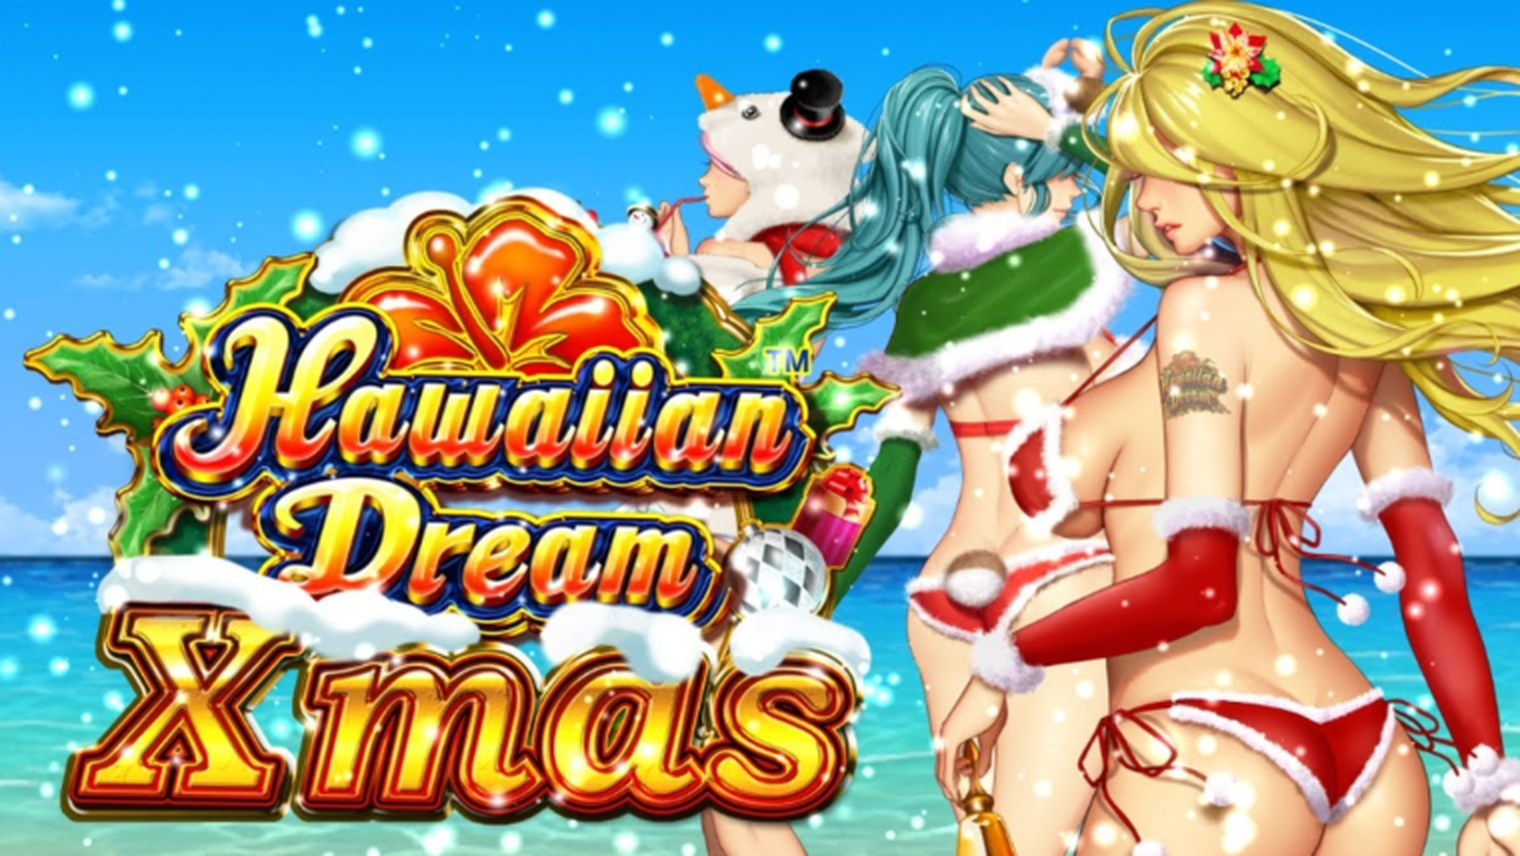 Se Hawaiian Dream Xmas Online Slot Demo Game, JTG